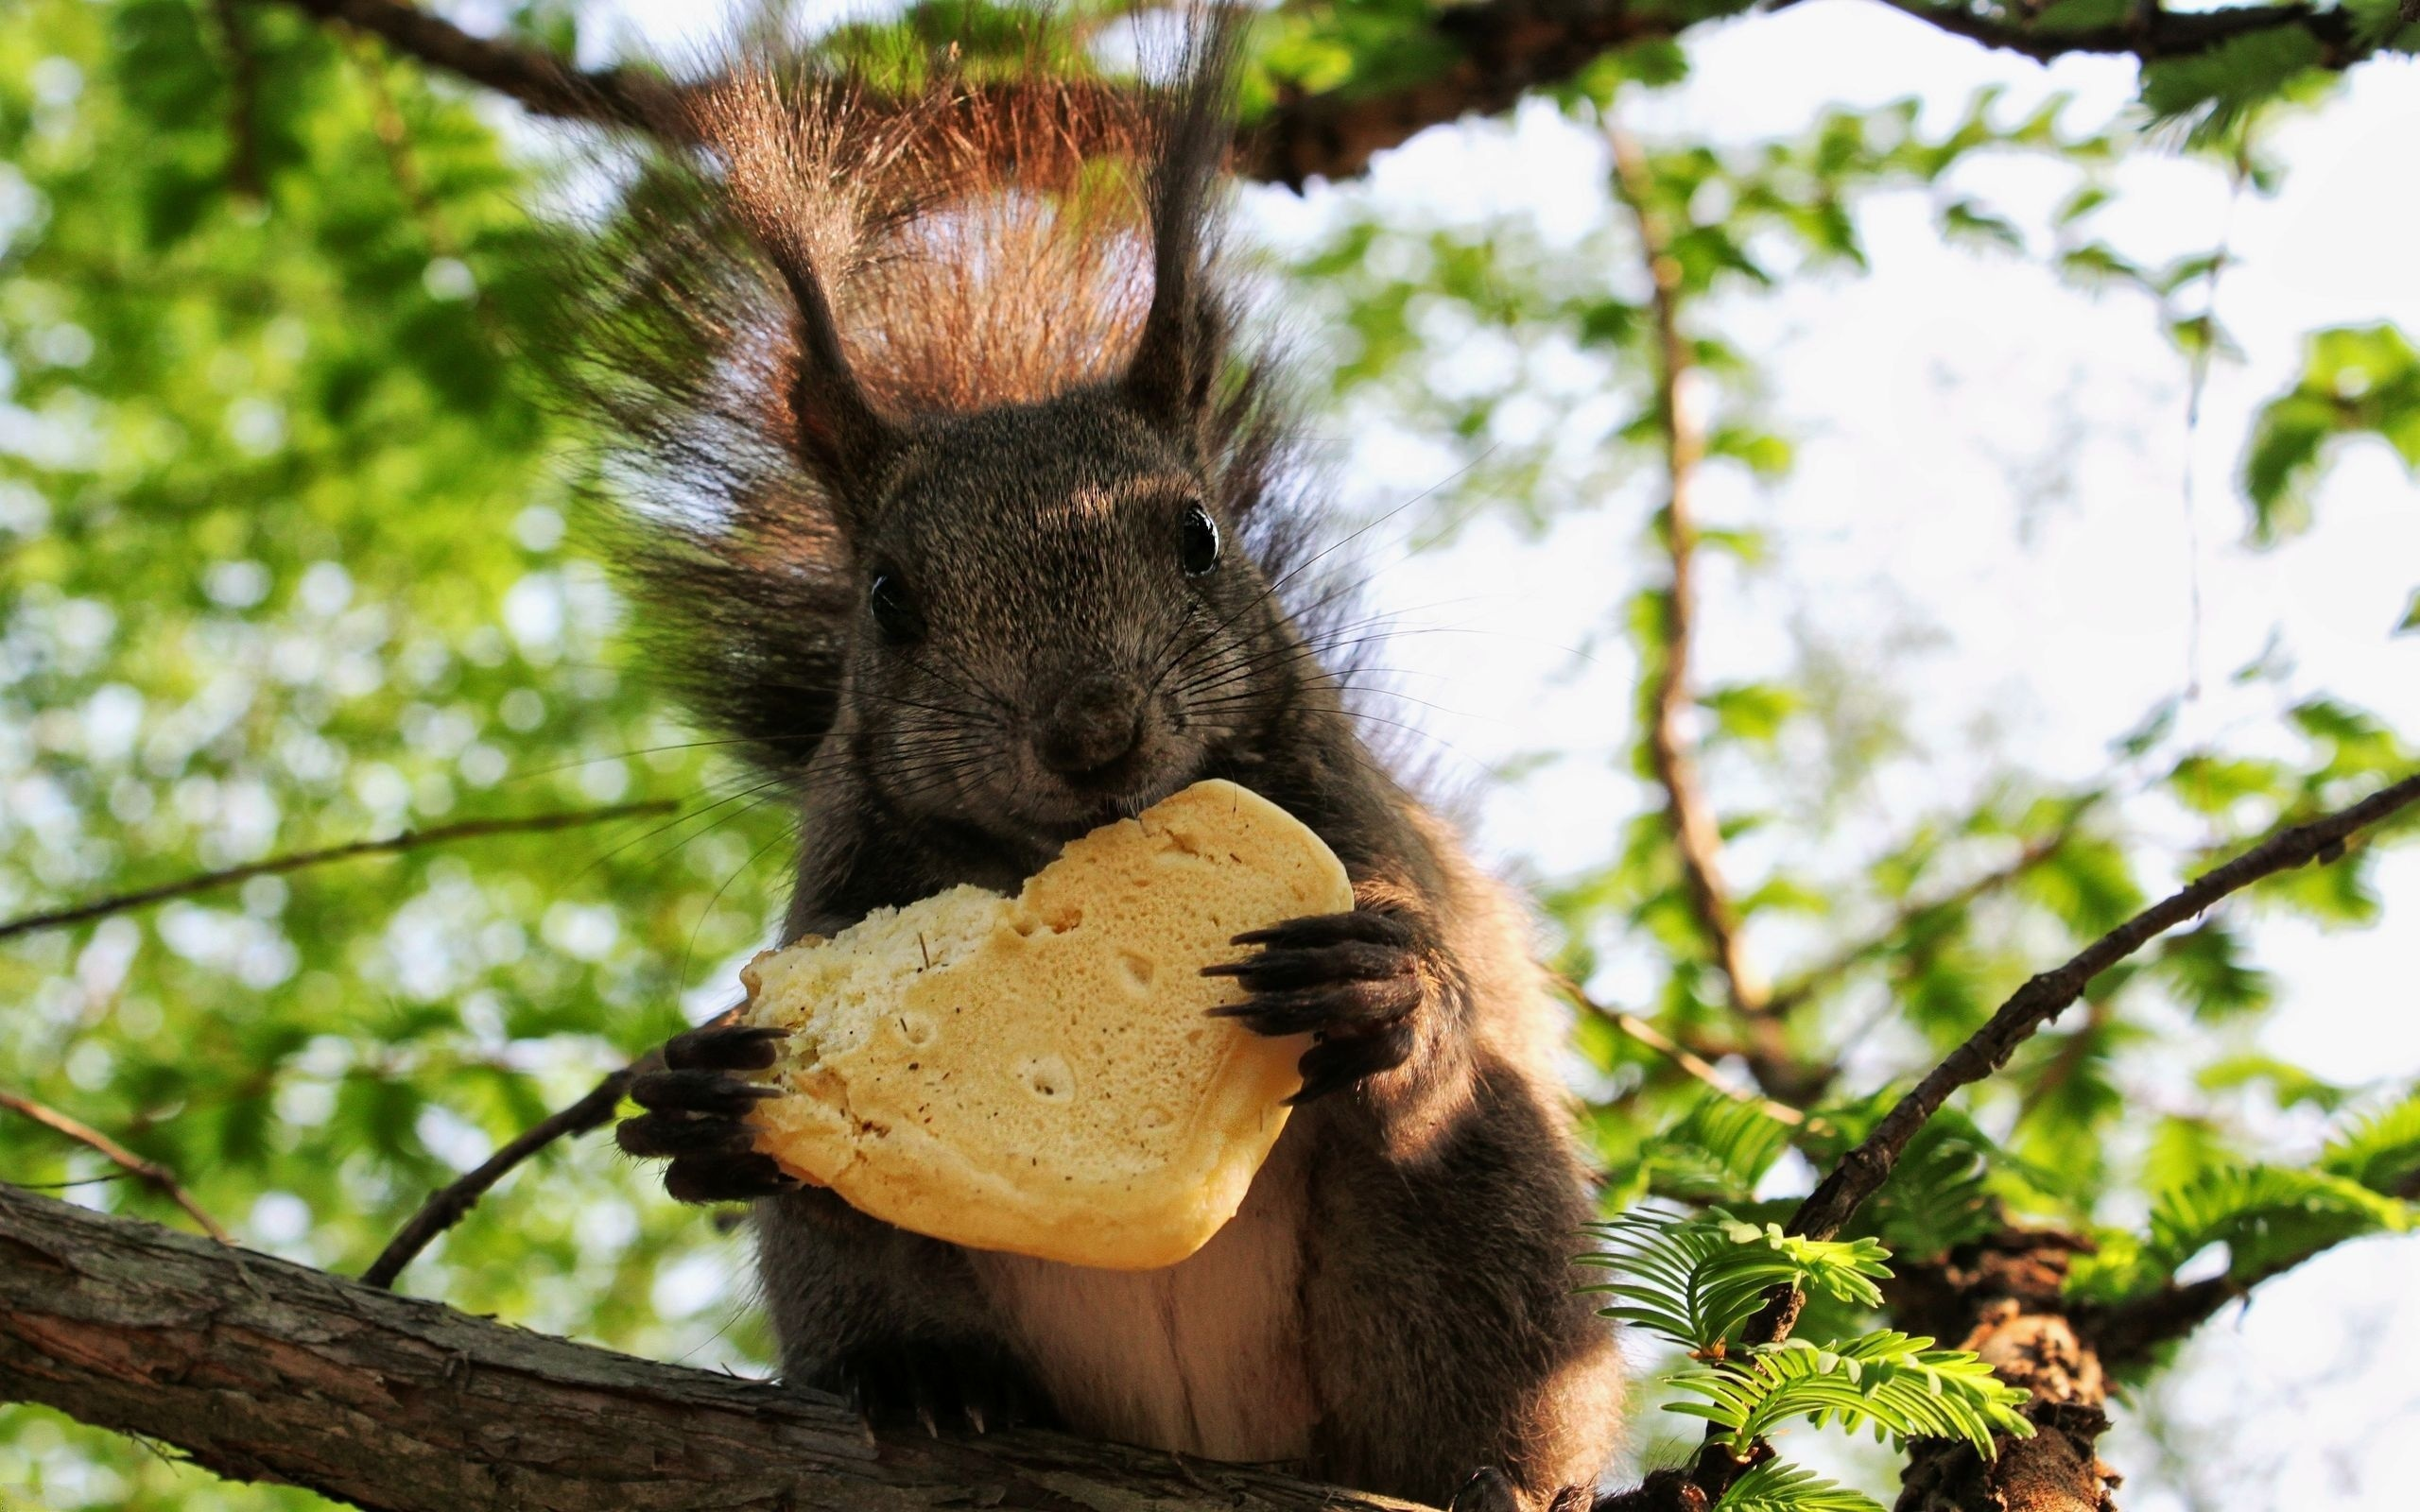 35514 download wallpaper Animals, Squirrel screensavers and pictures for free